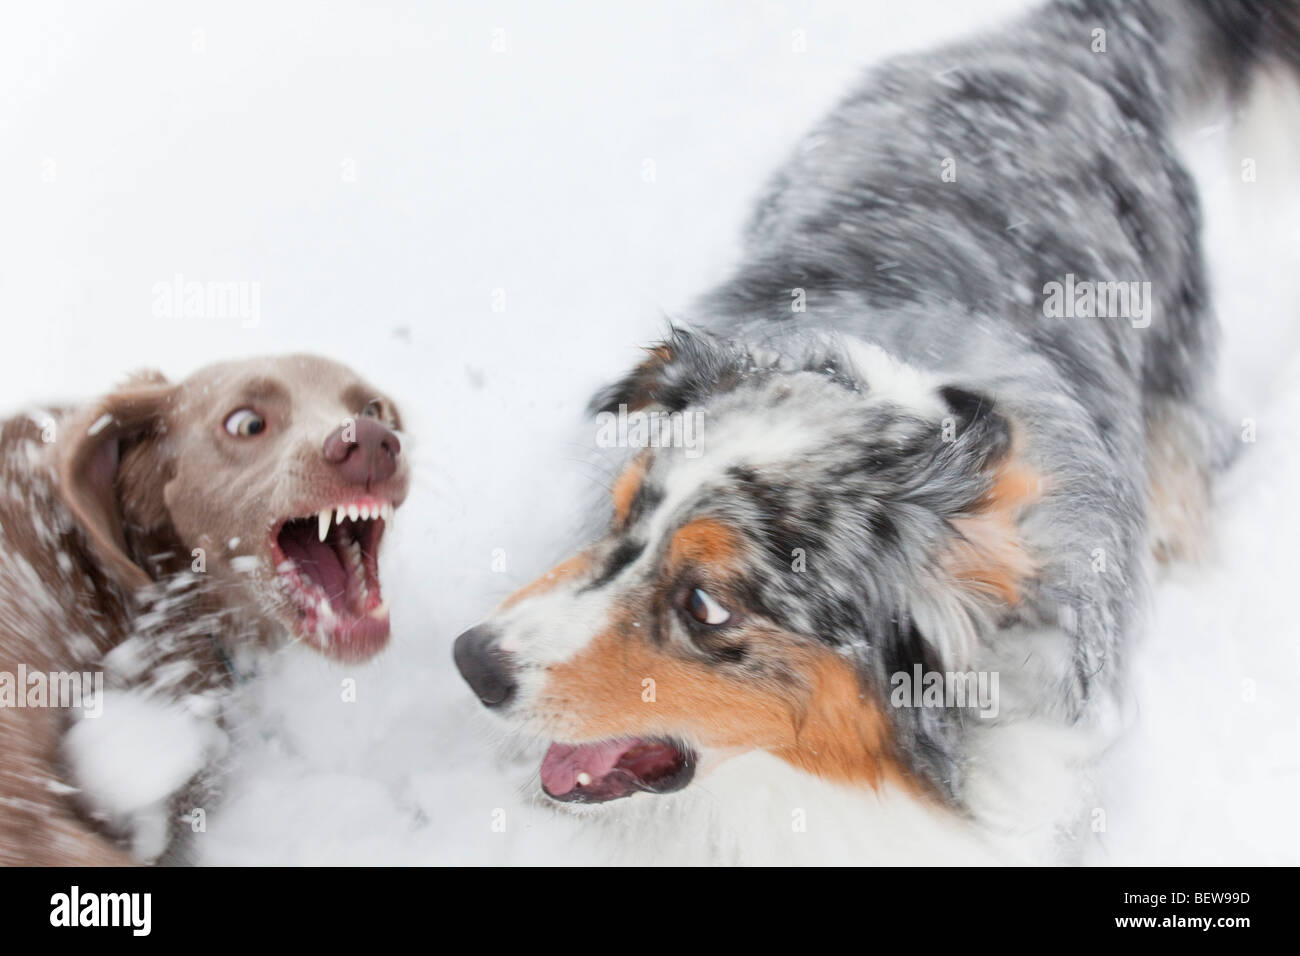 Two dogs fighting in the snow, high angle view - Stock Image